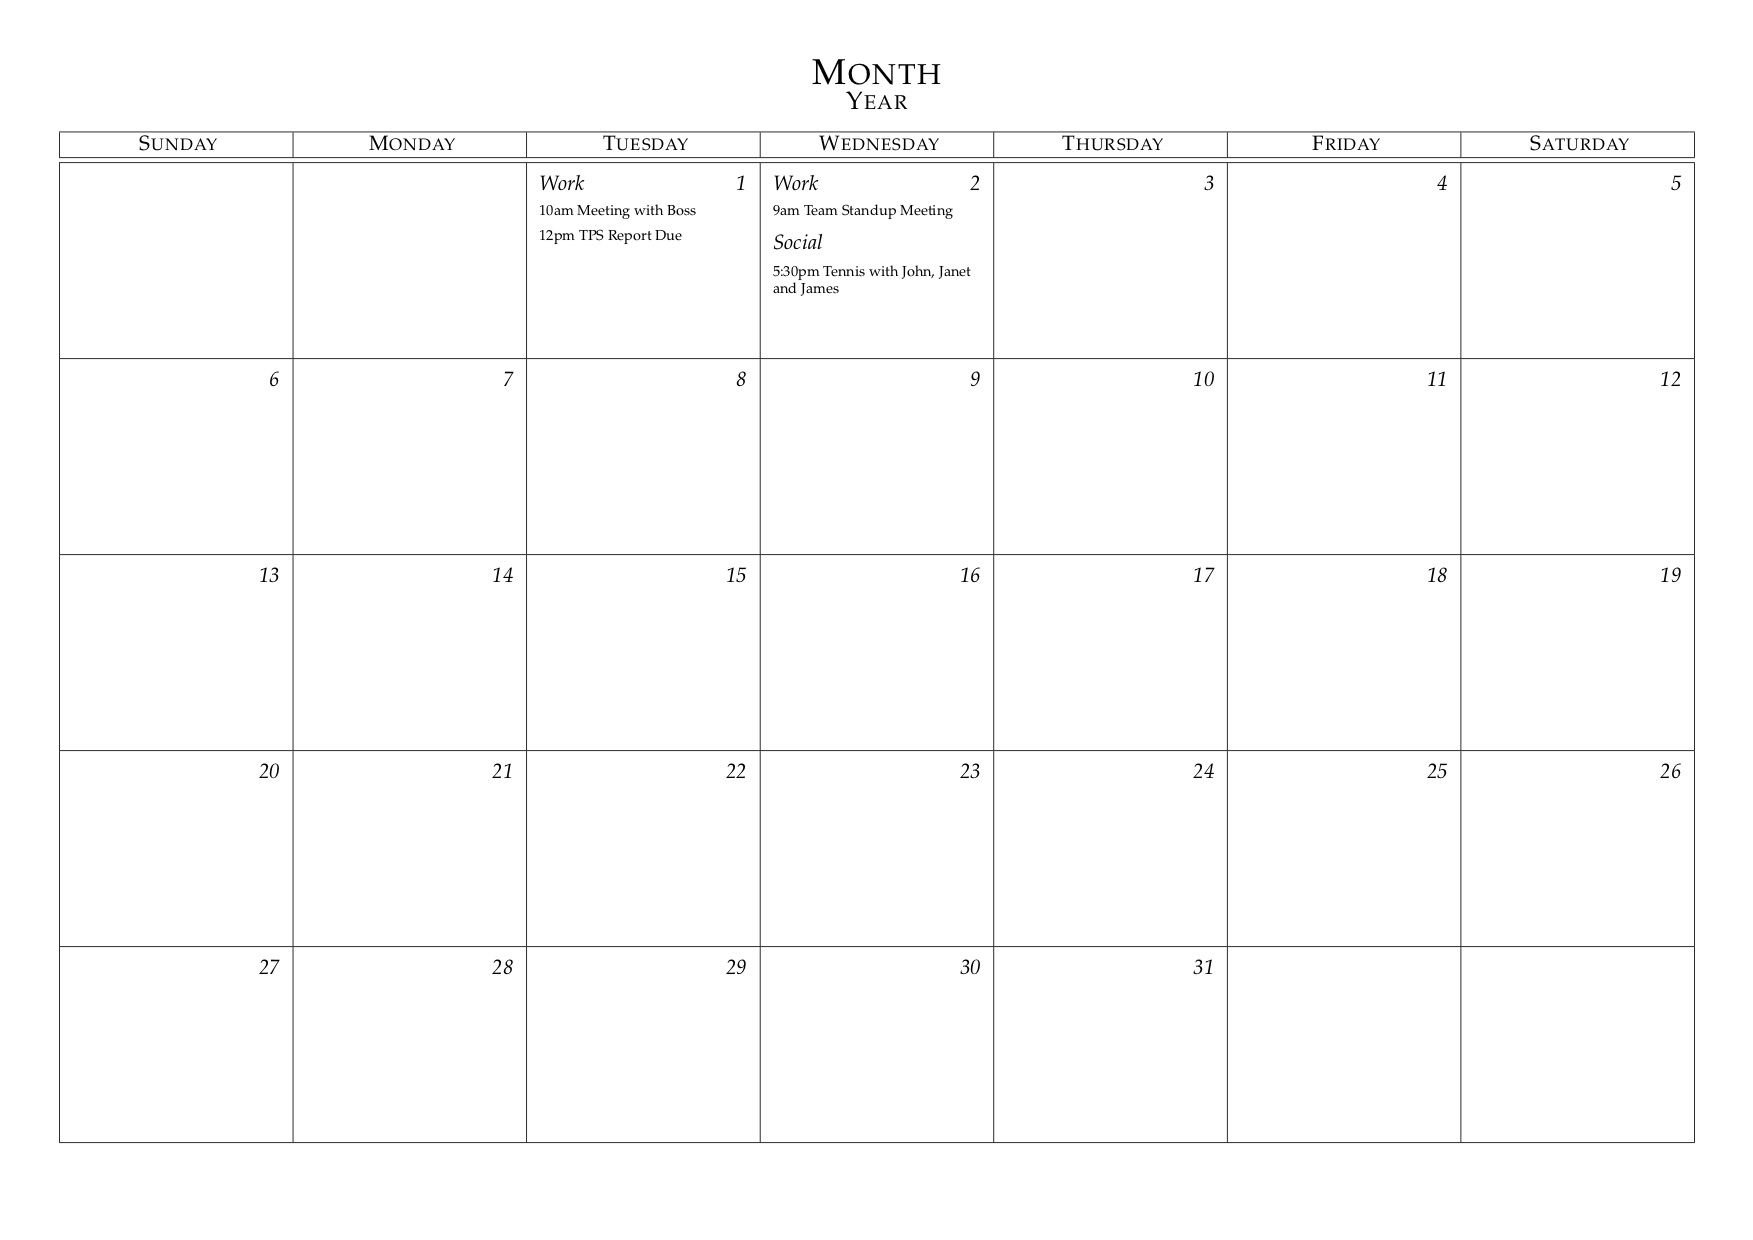 Universal Monthly Calendar I Can Edit | Get Your Calendar Free Calendars That I Can Edit And Print